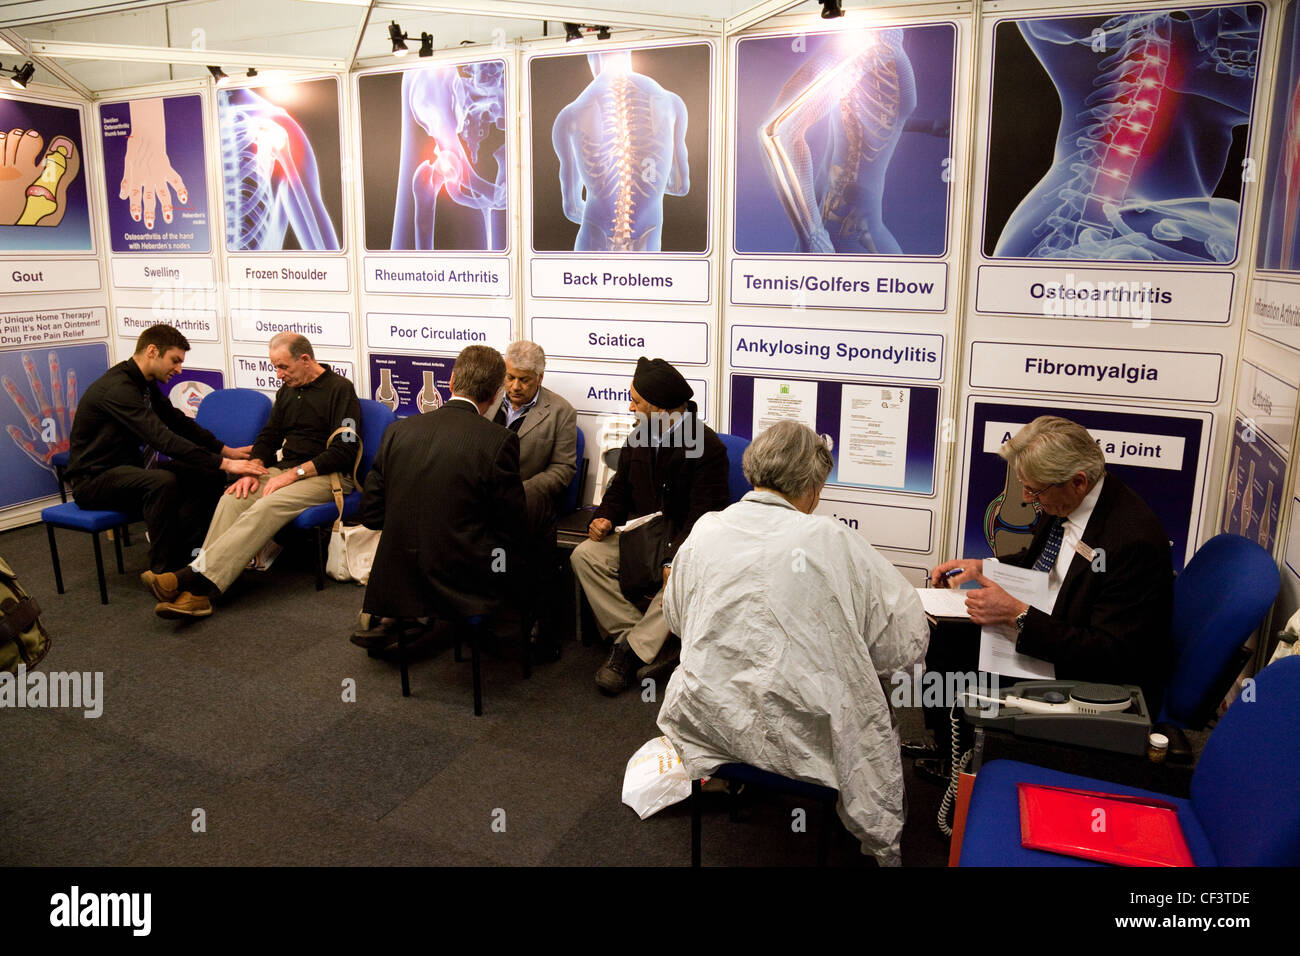 Patients getting advice about arthritis conditions from specialists at the Back Pain show london UK - Stock Image